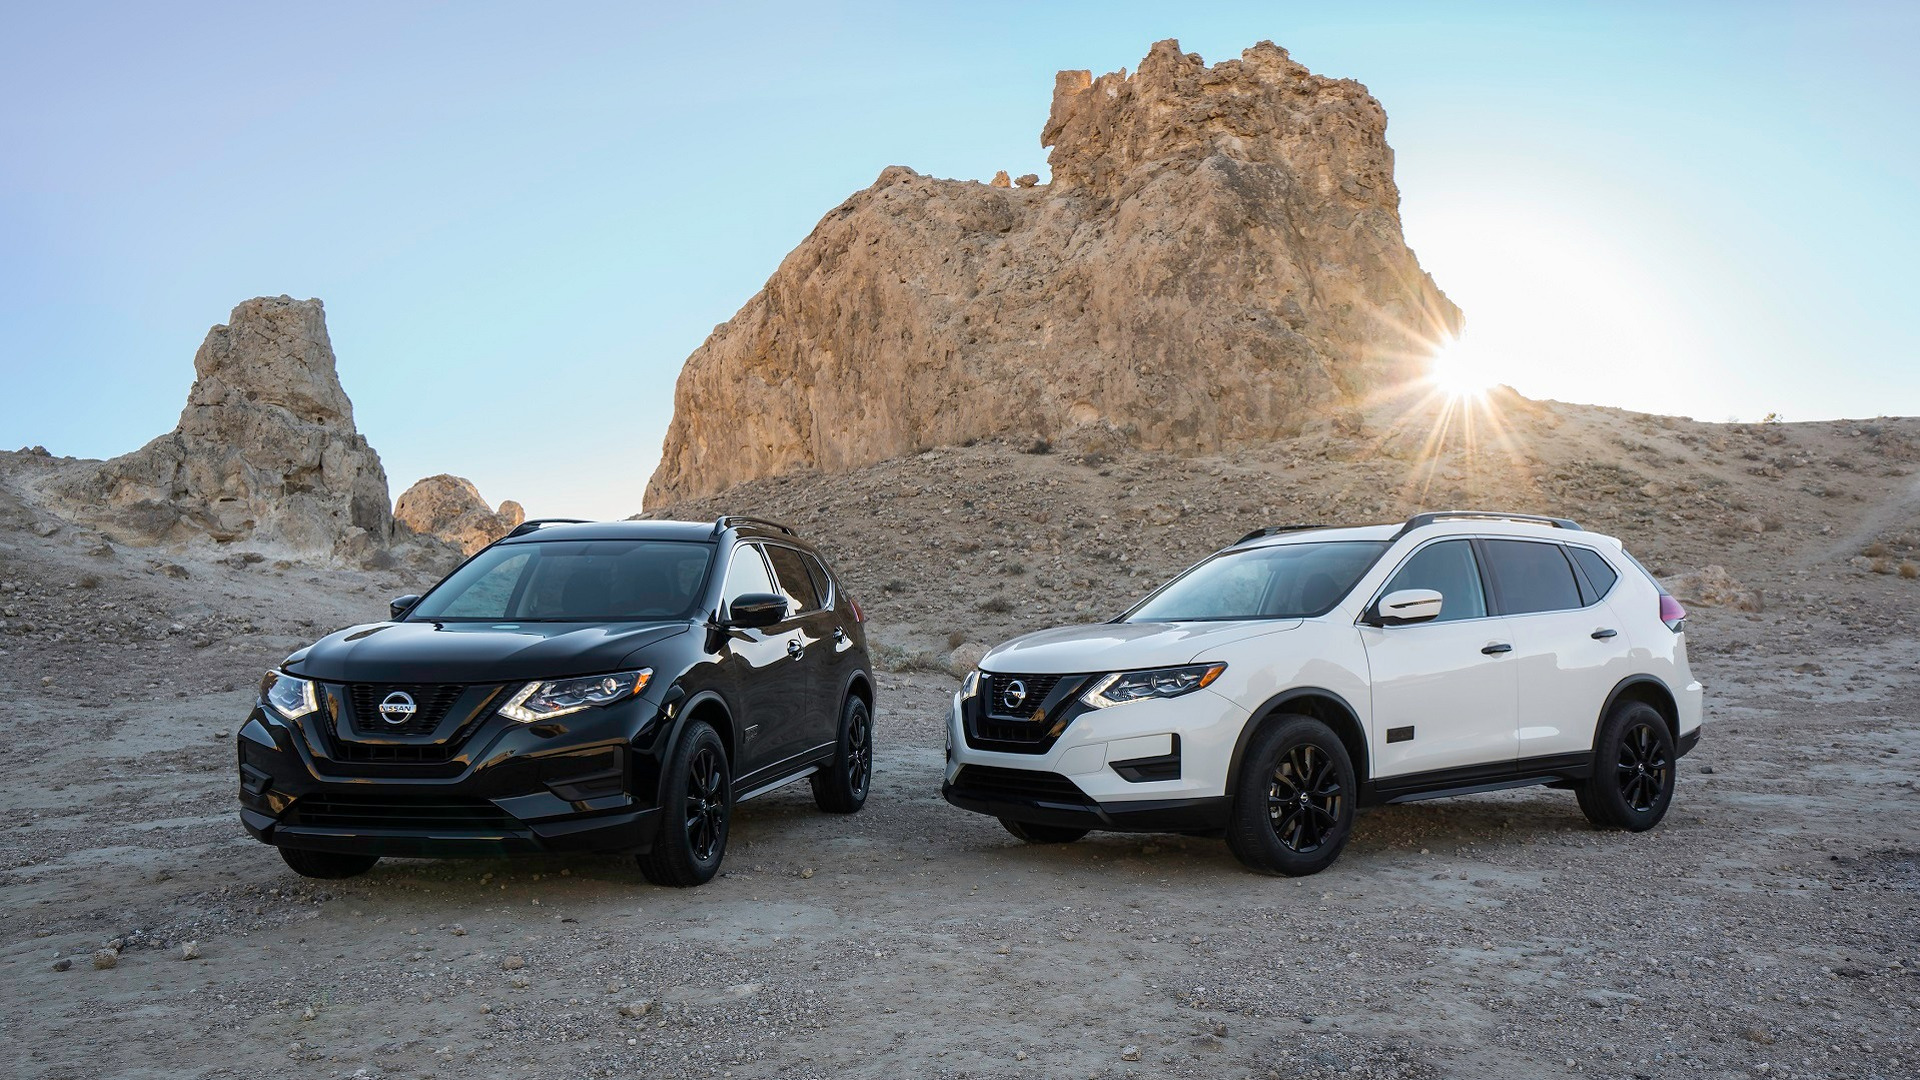 three rouge rogue showdown styling truck trend nissan quarters view vs prevnext news